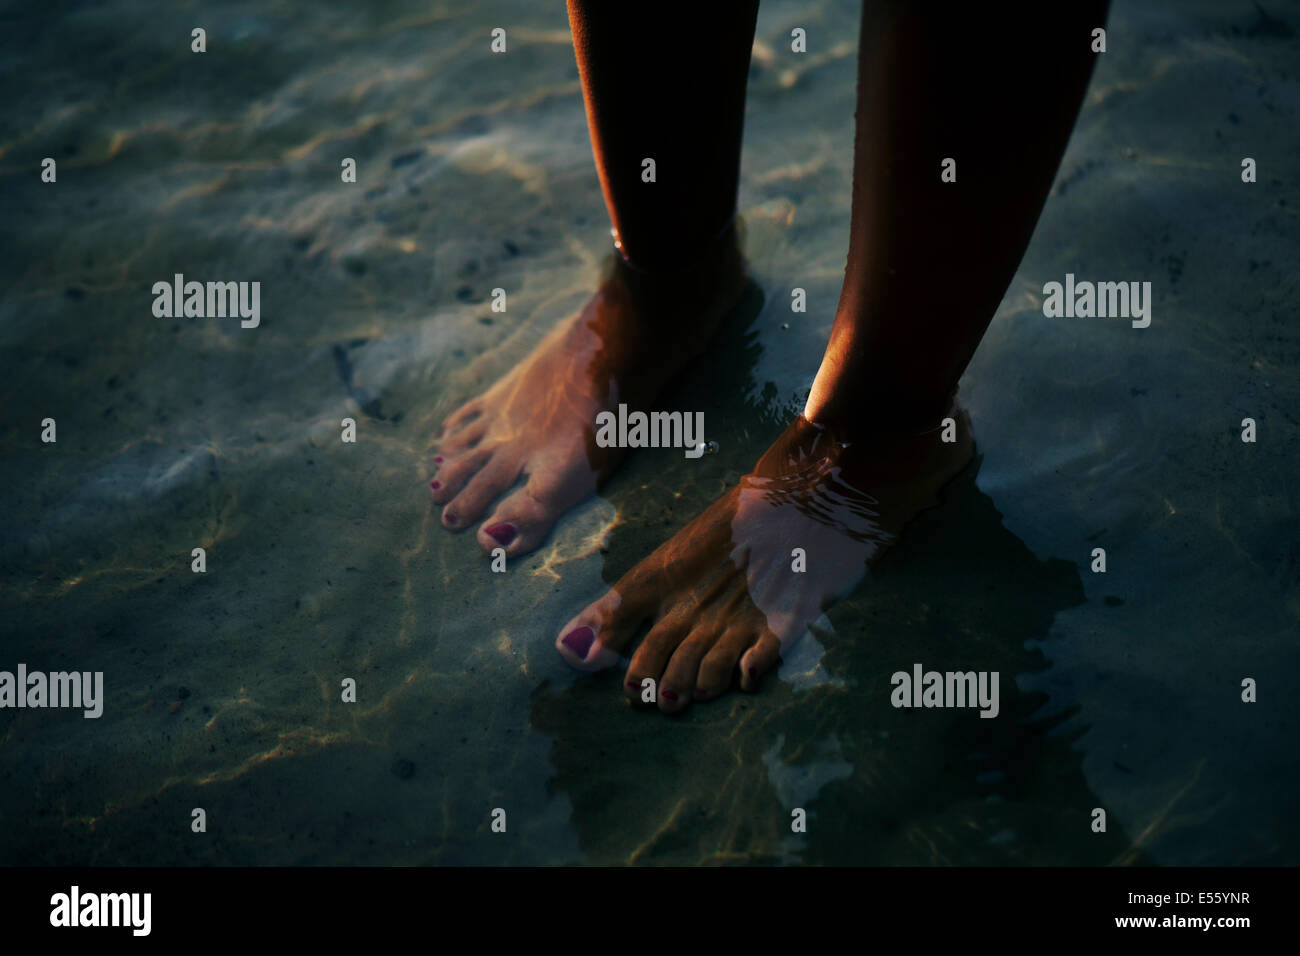 Woman standing barefoot in the water Stock Photo